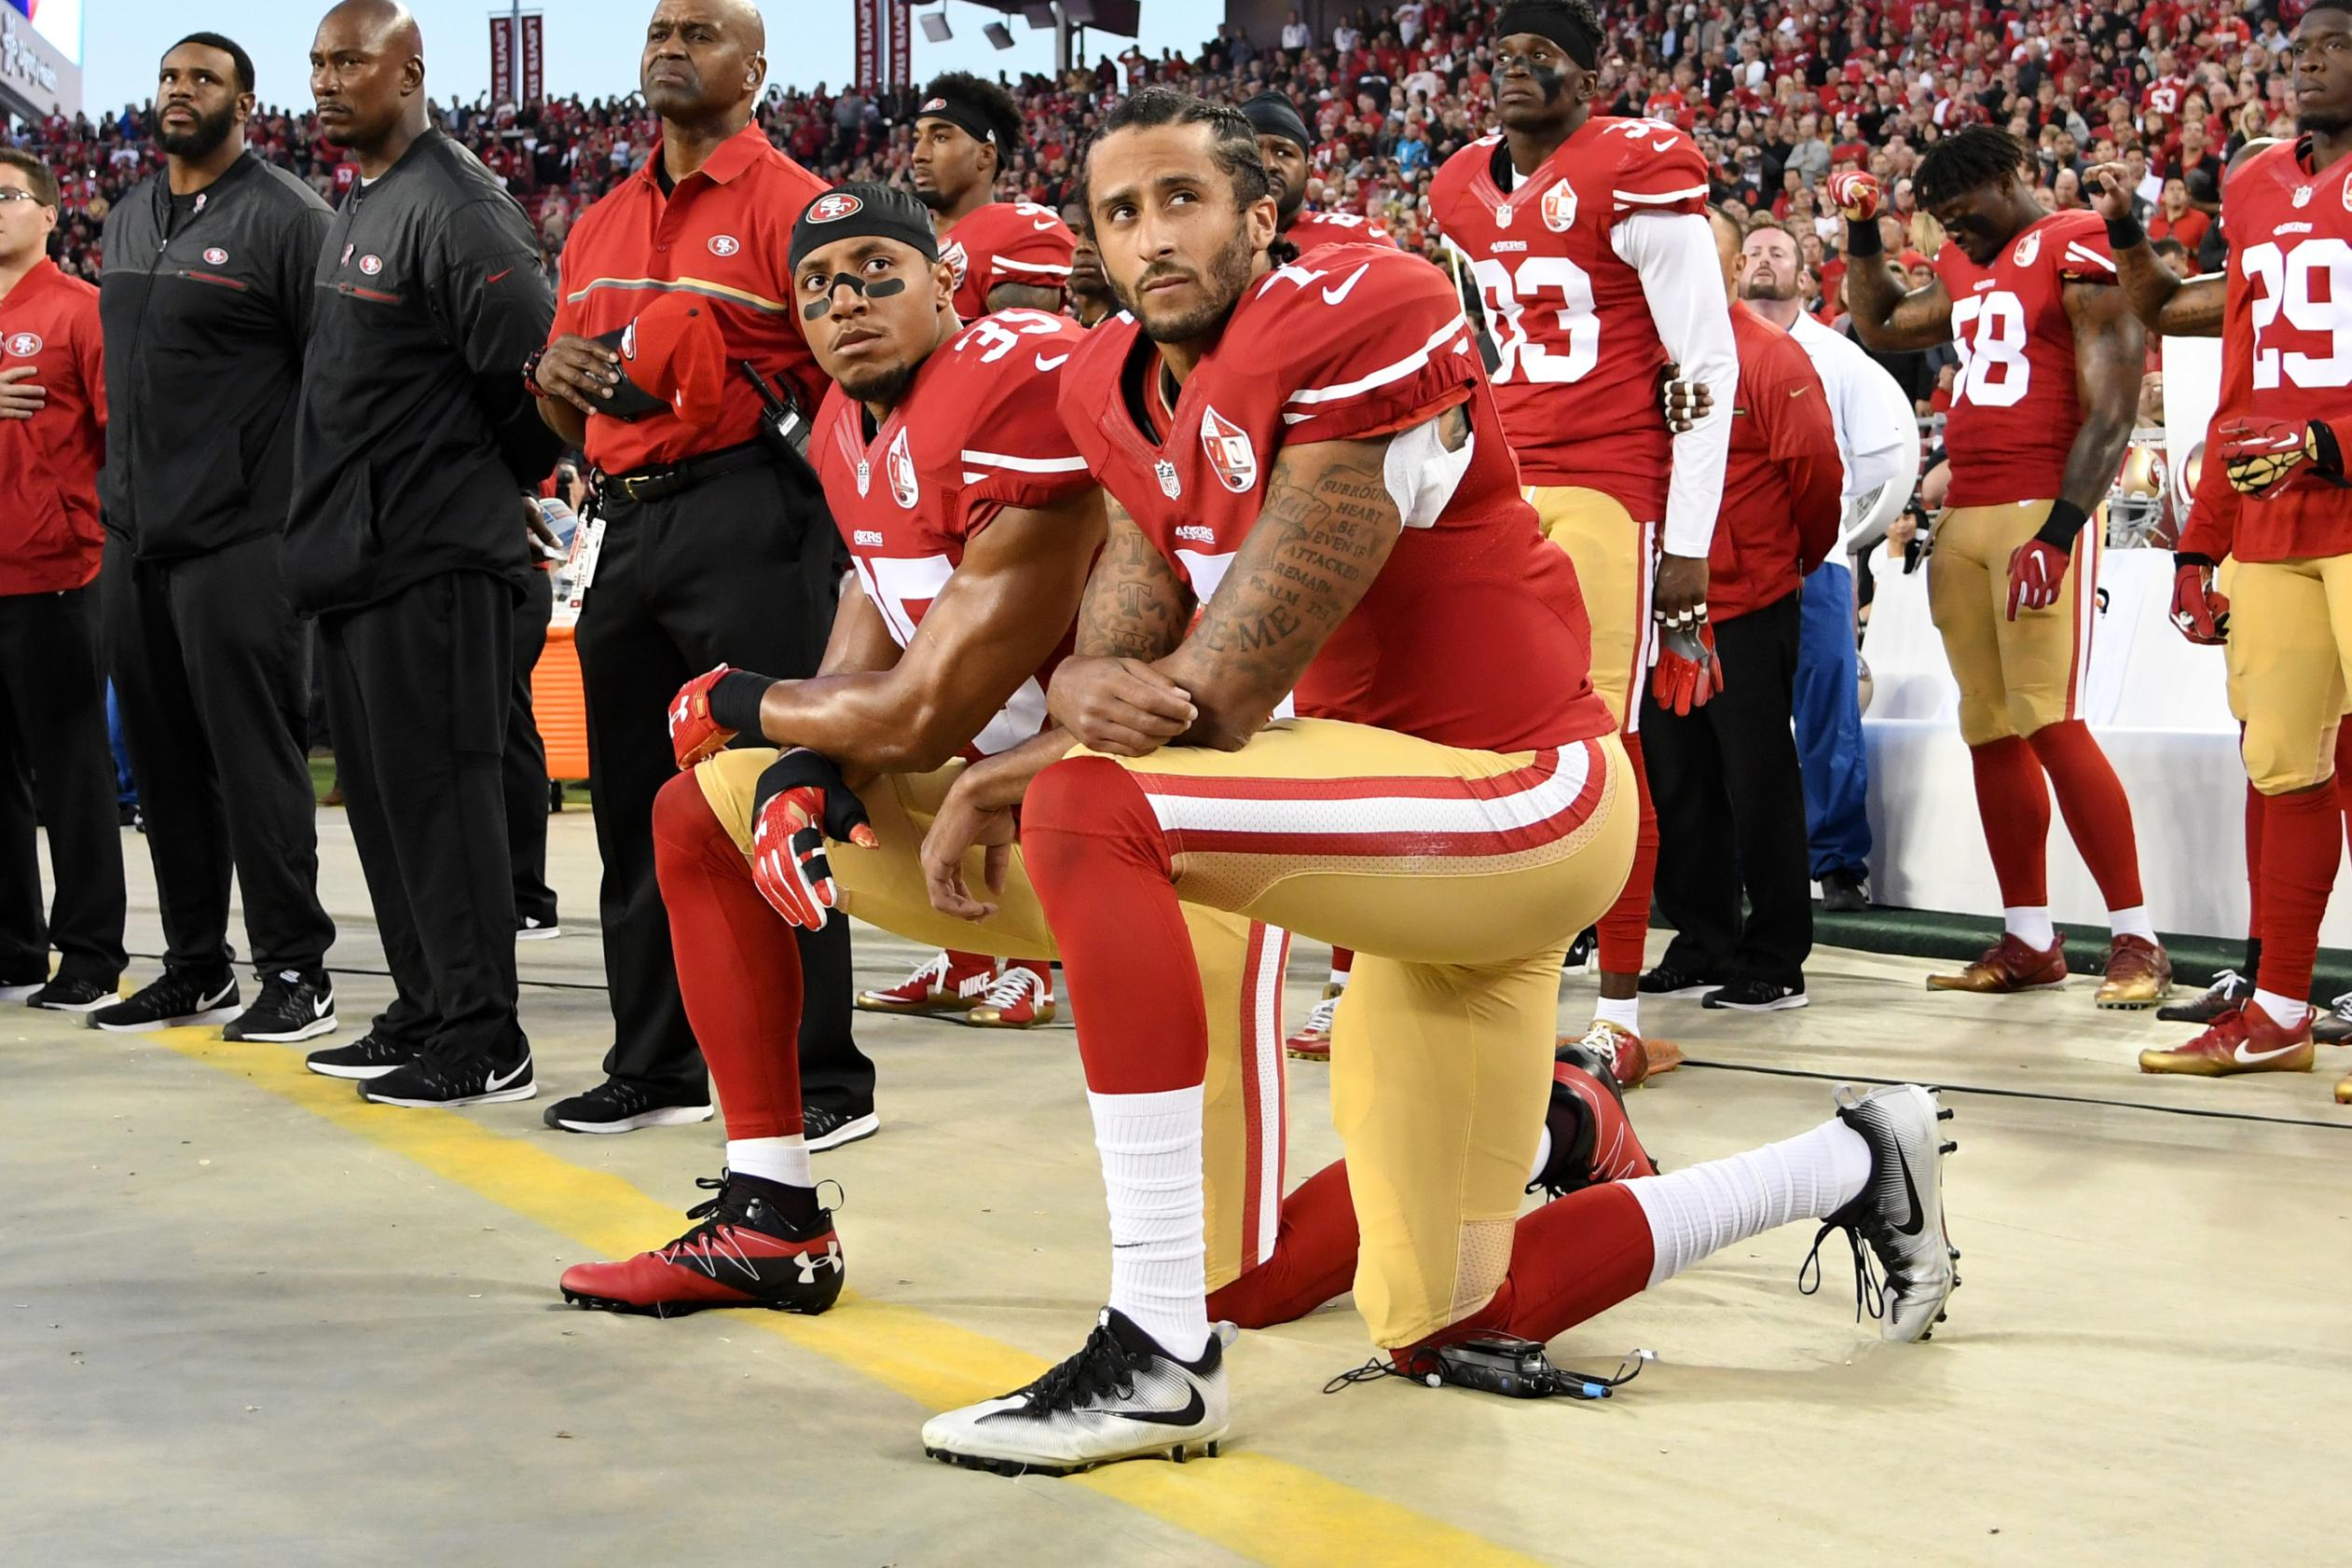 NFL Commissioner Roger Goodell wishes he had 'listened earlier' to Colin Kaepernick